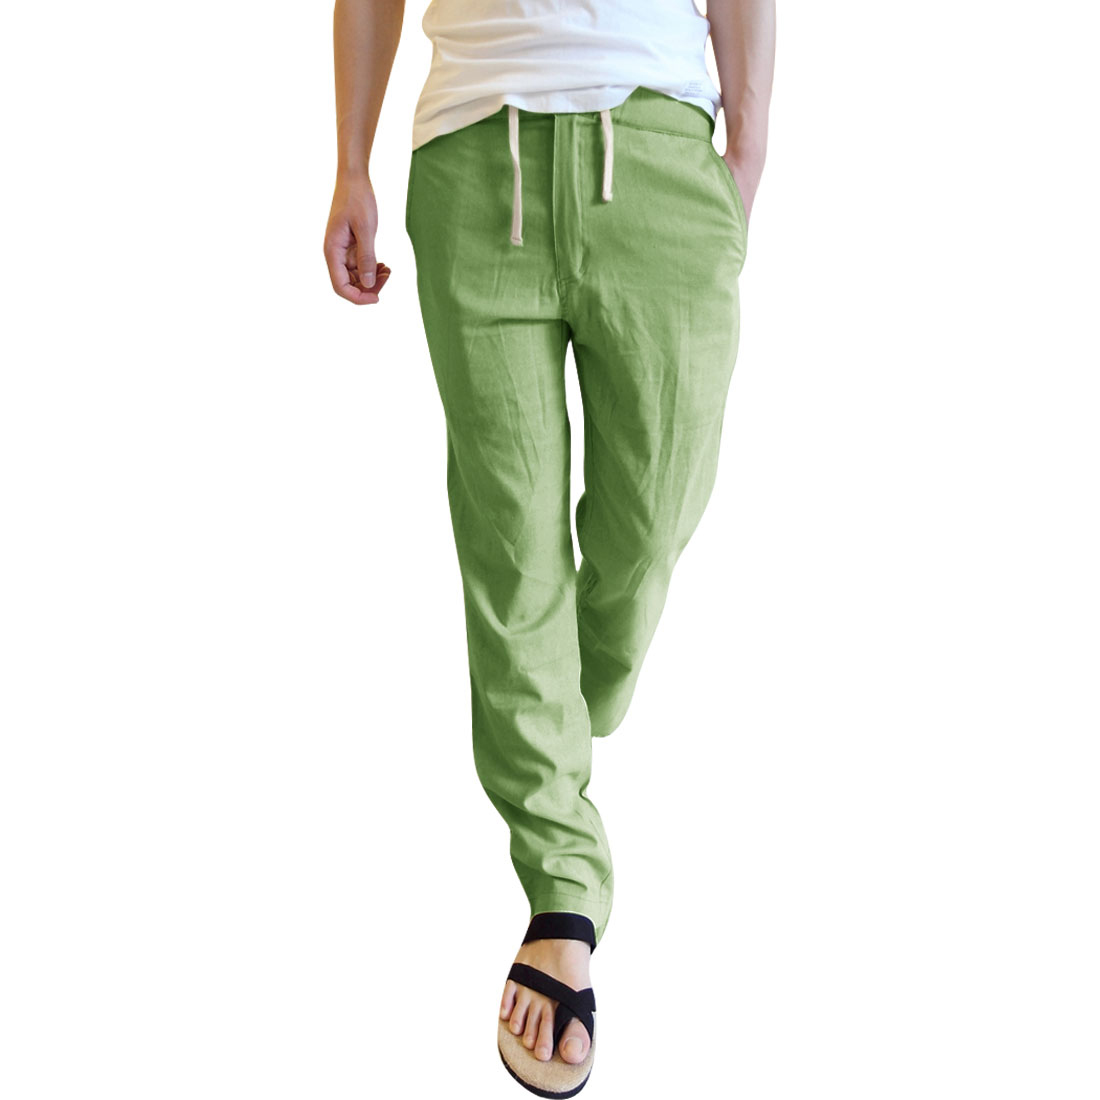 Men Drawstring Waist Hip Pocket Leisure Pants Khaki W29